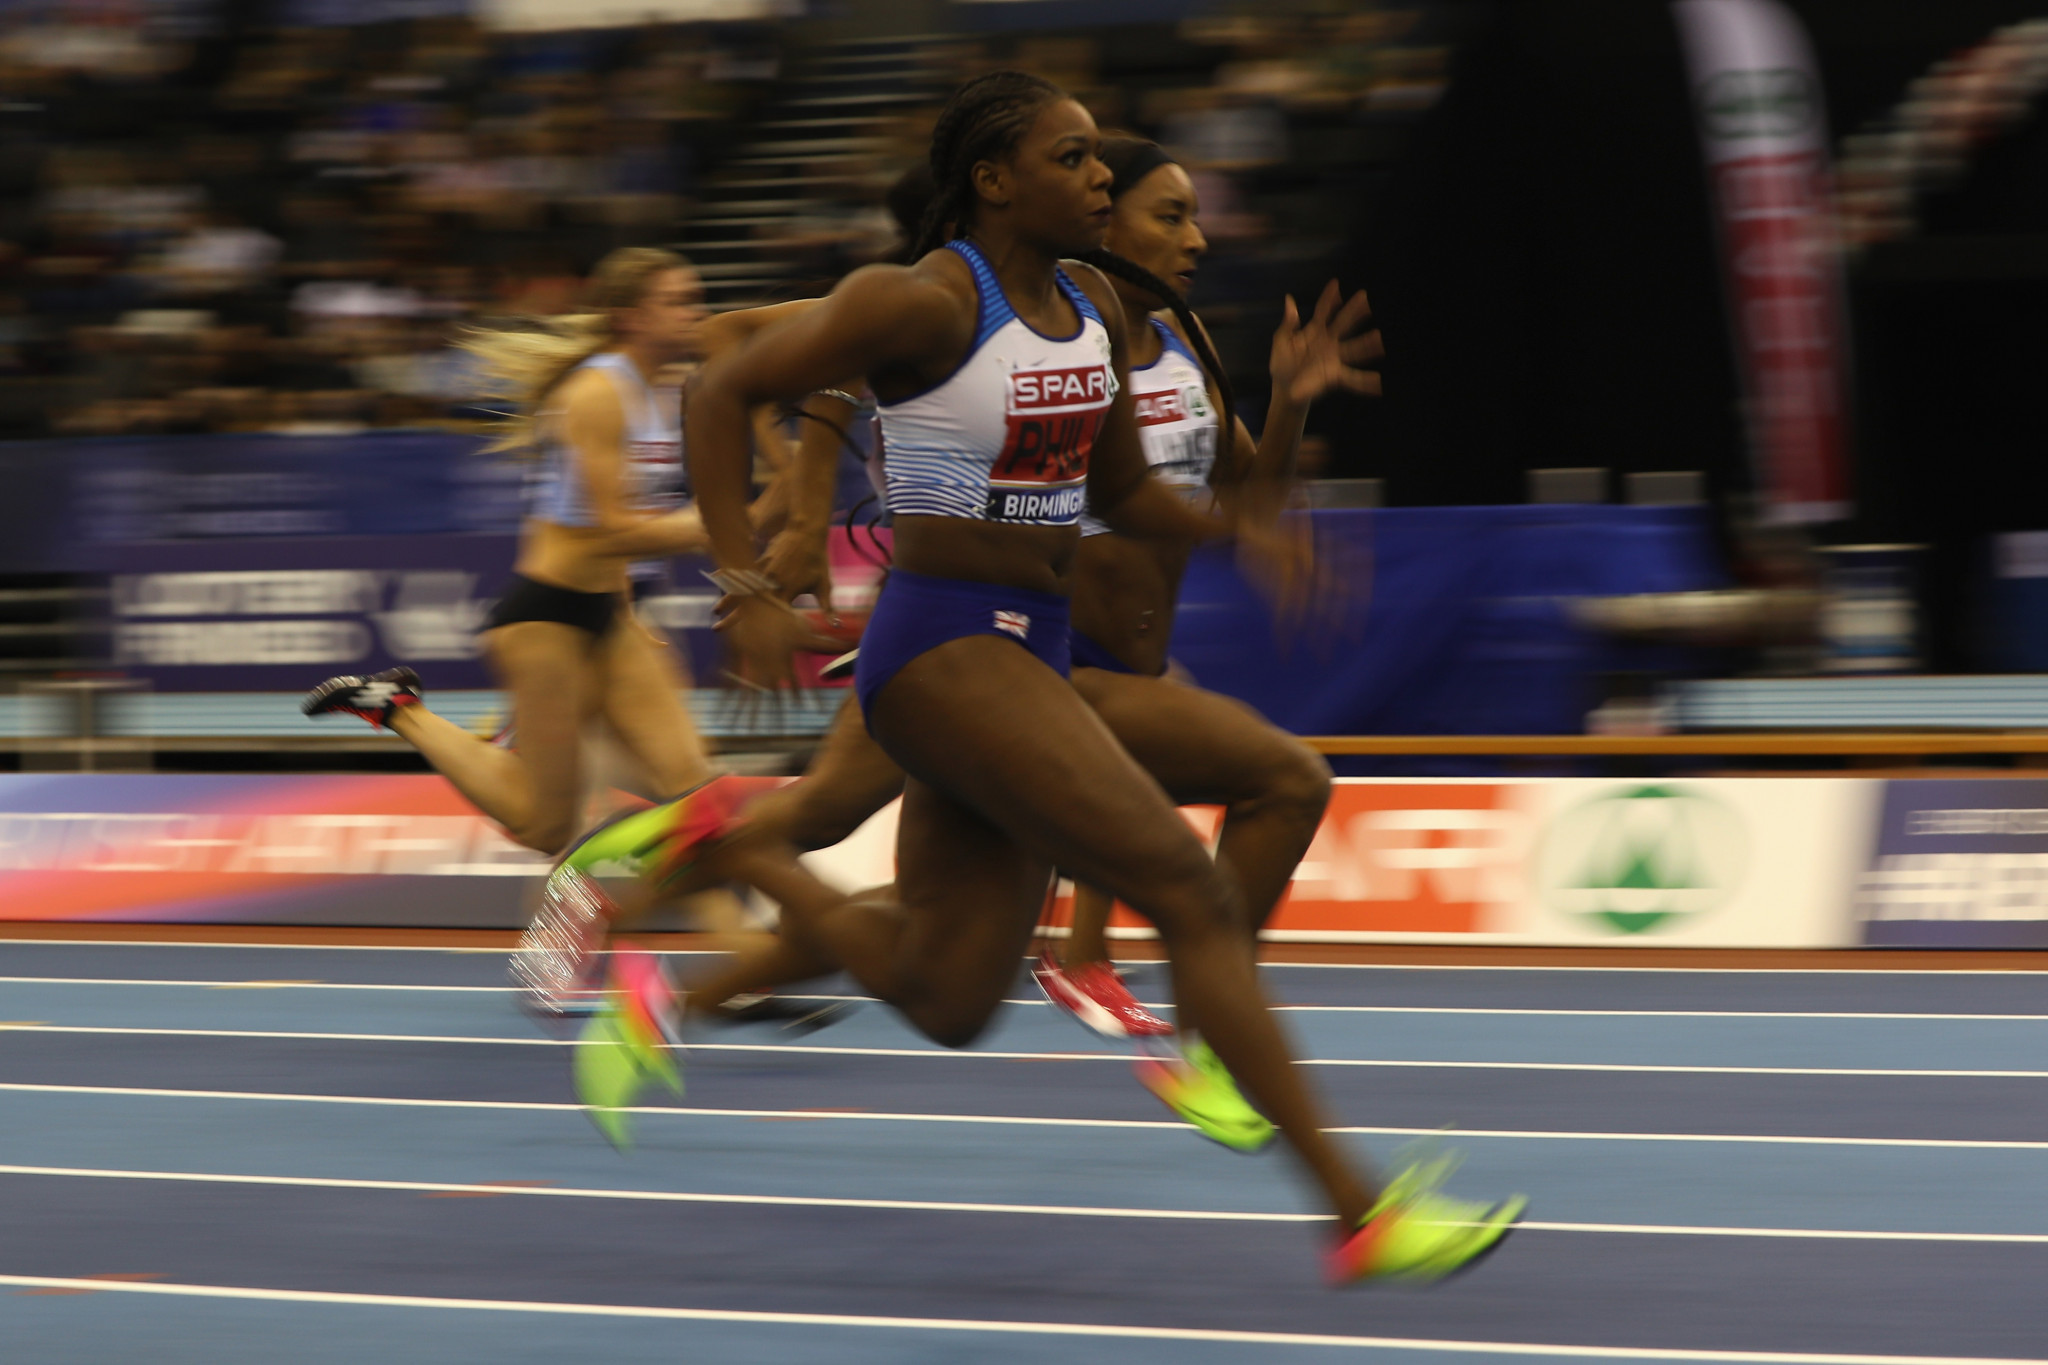 Search Consultancy to support volunteer programme for World Indoor Athletics Championships in Birmingham